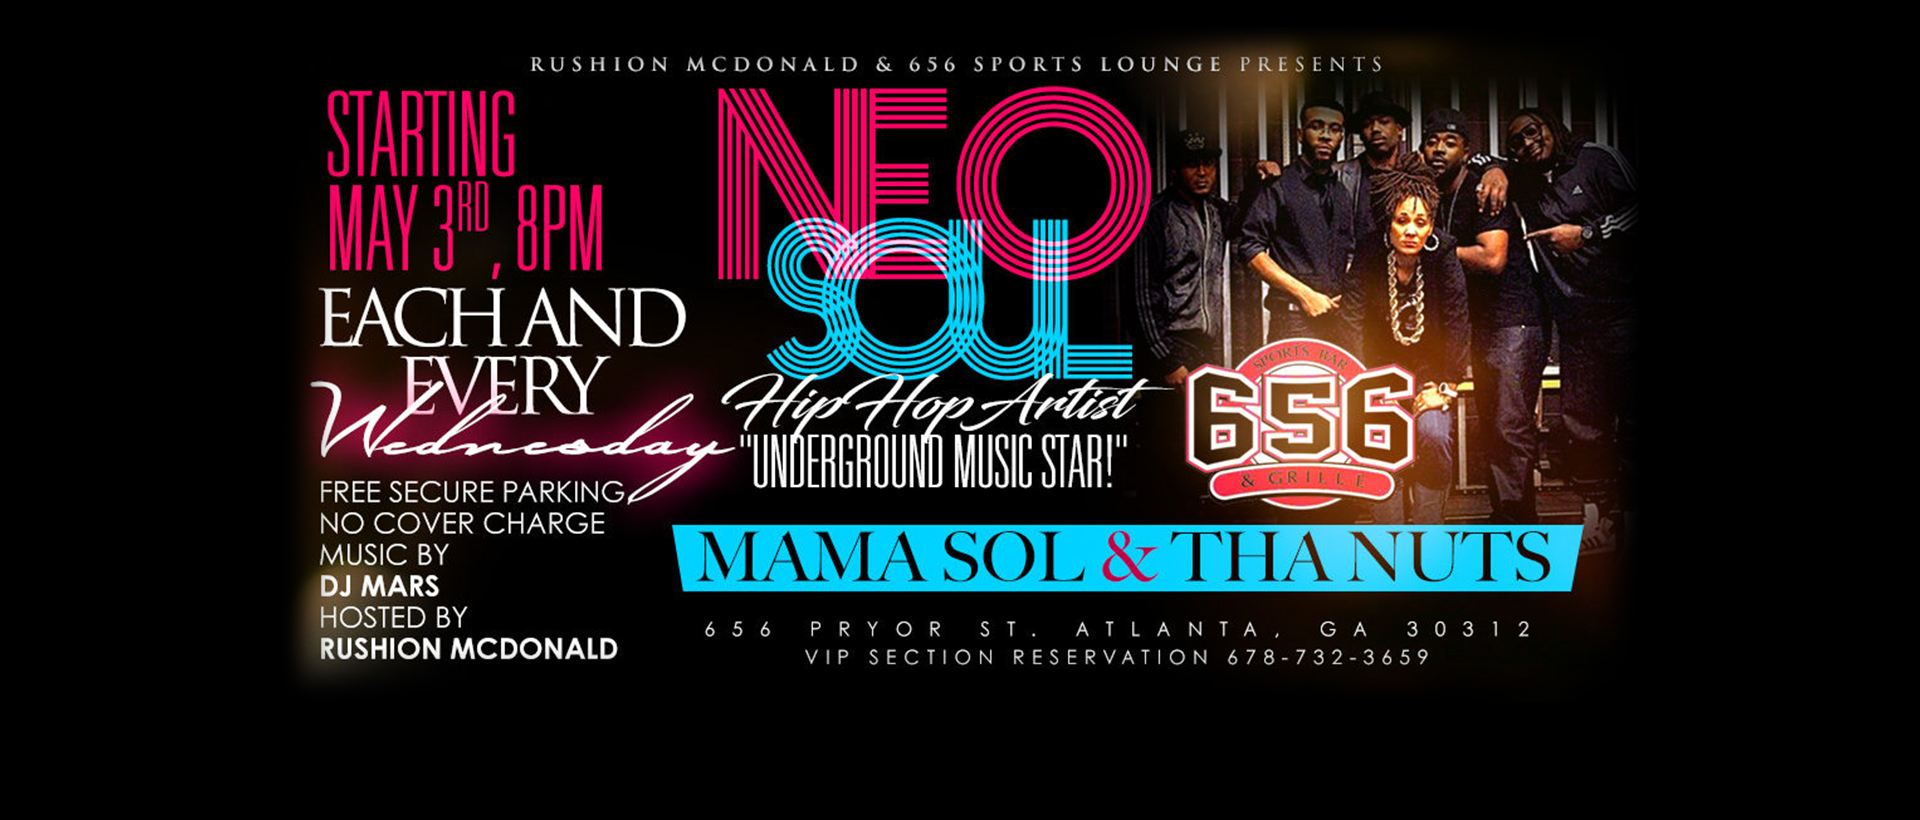 Neo Soul<br/>Starting May 3rd at 8PM